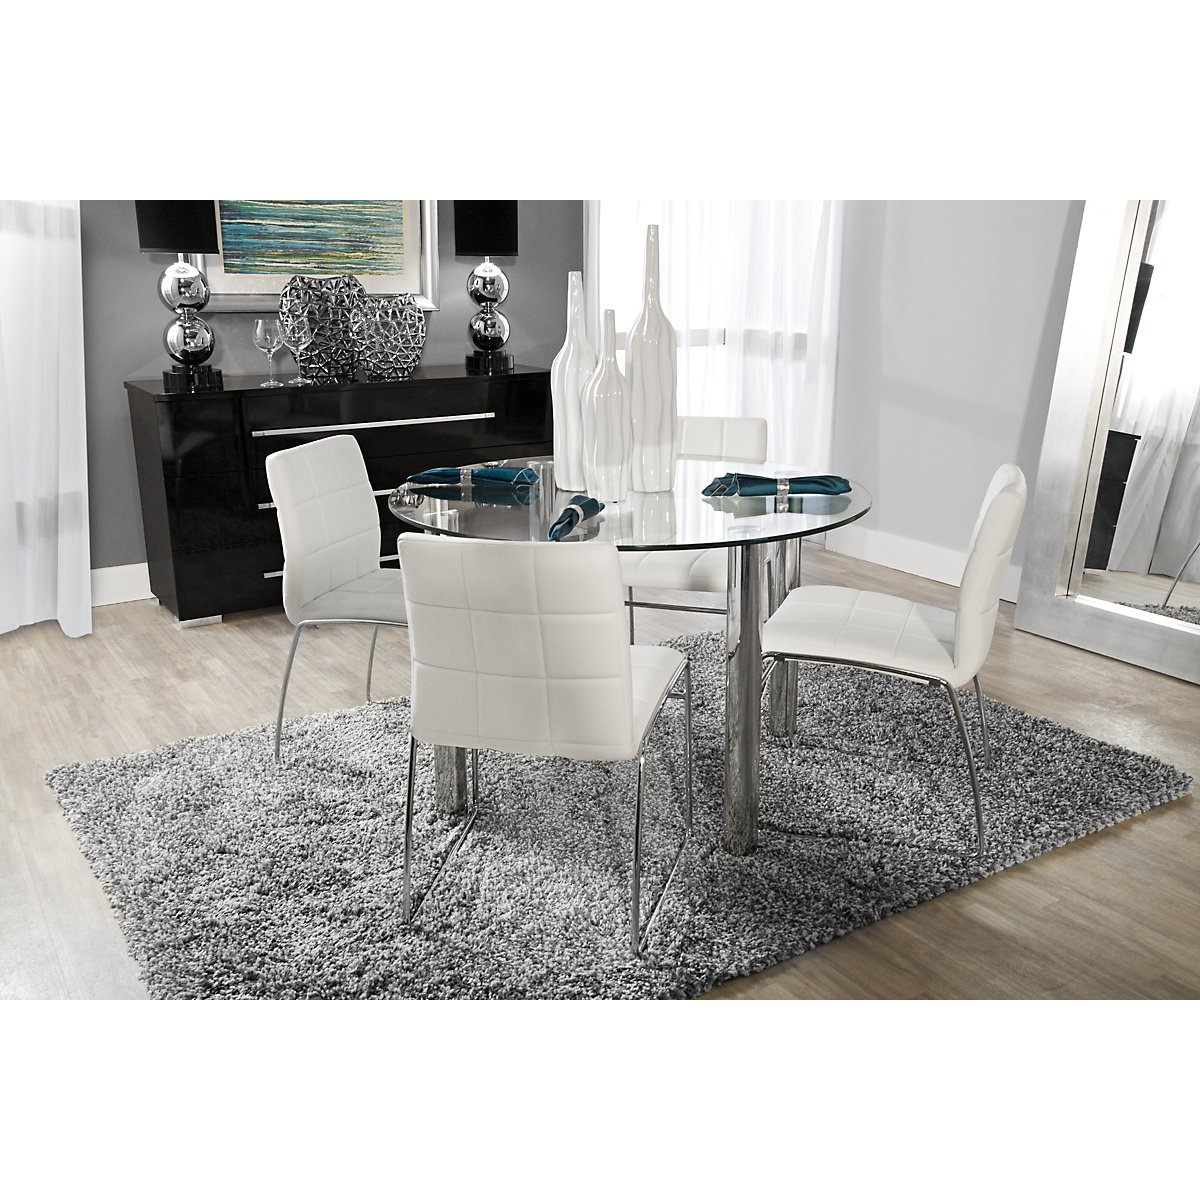 Napoli White Round Table Amp 4 Chairs